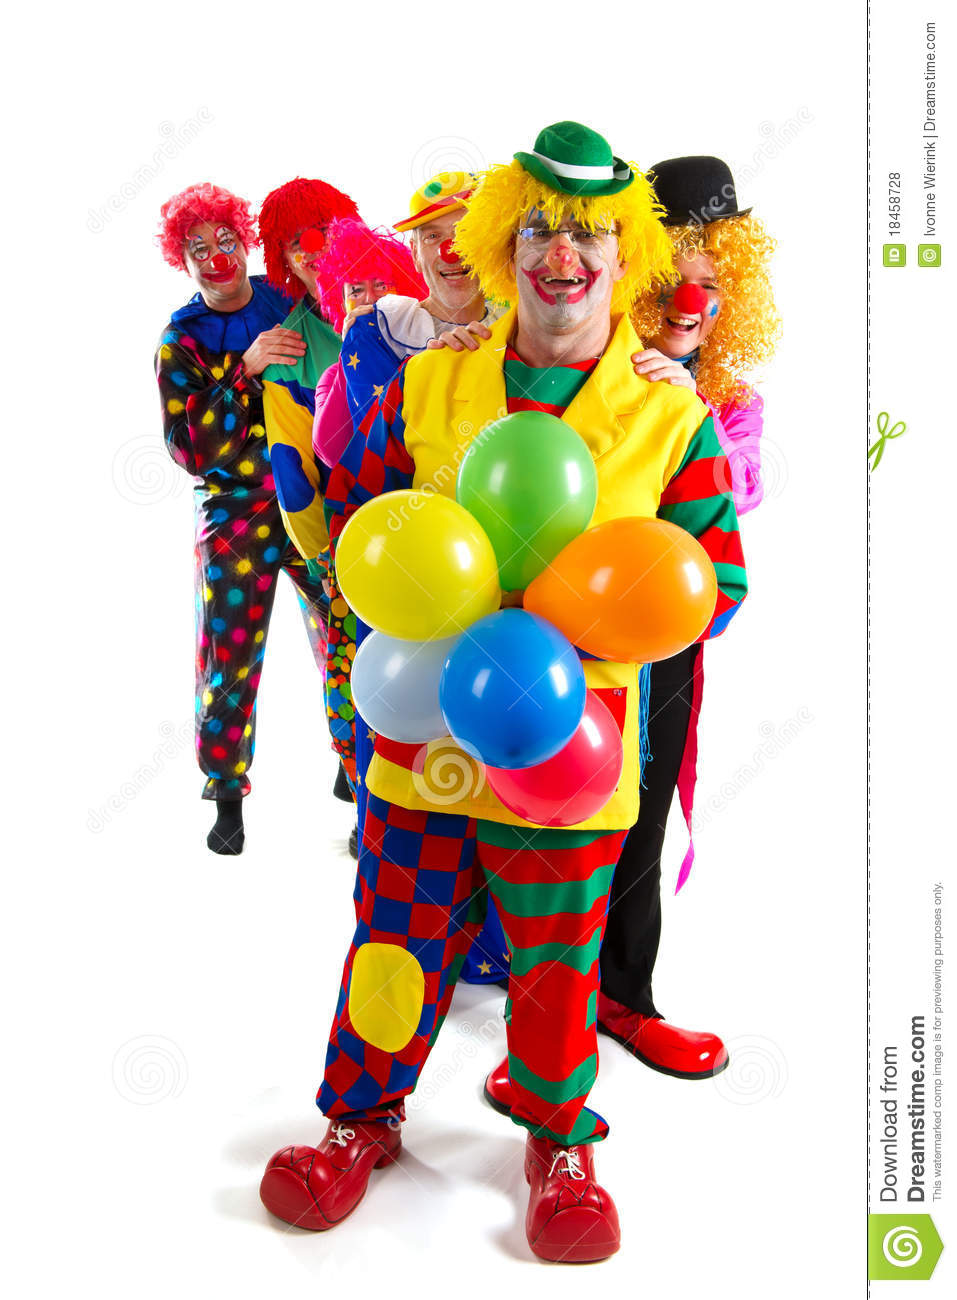 Happy Clowns Royalty Free Stock Photos - Image: 18458728